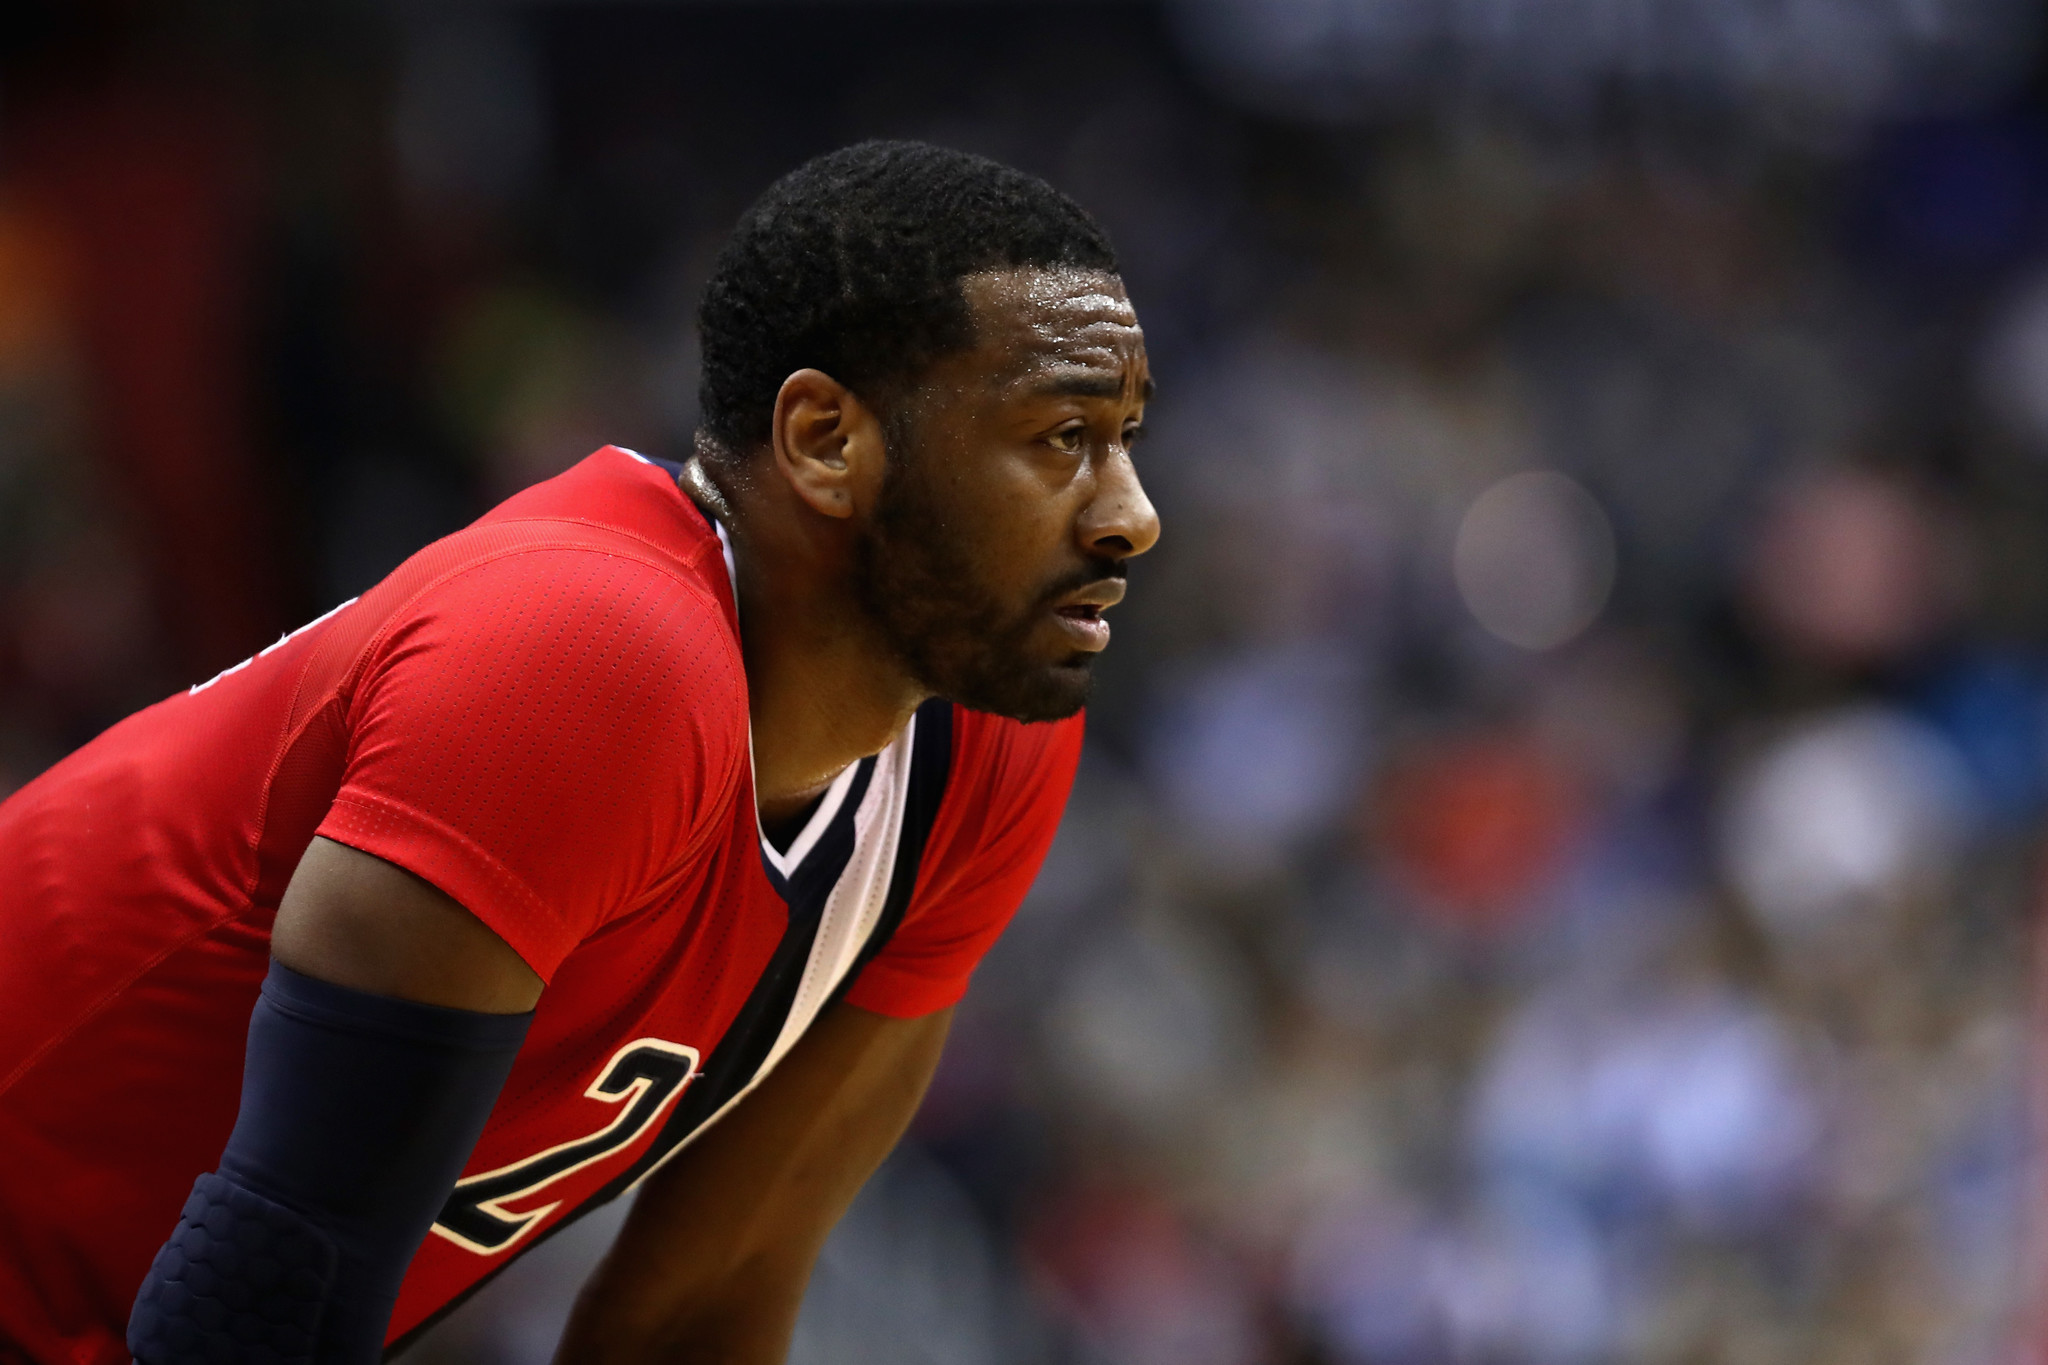 Kentucky Basketball Top 5 Point Guards Of The John: It's Time To Stop Overlooking John Wall Among The NBA's